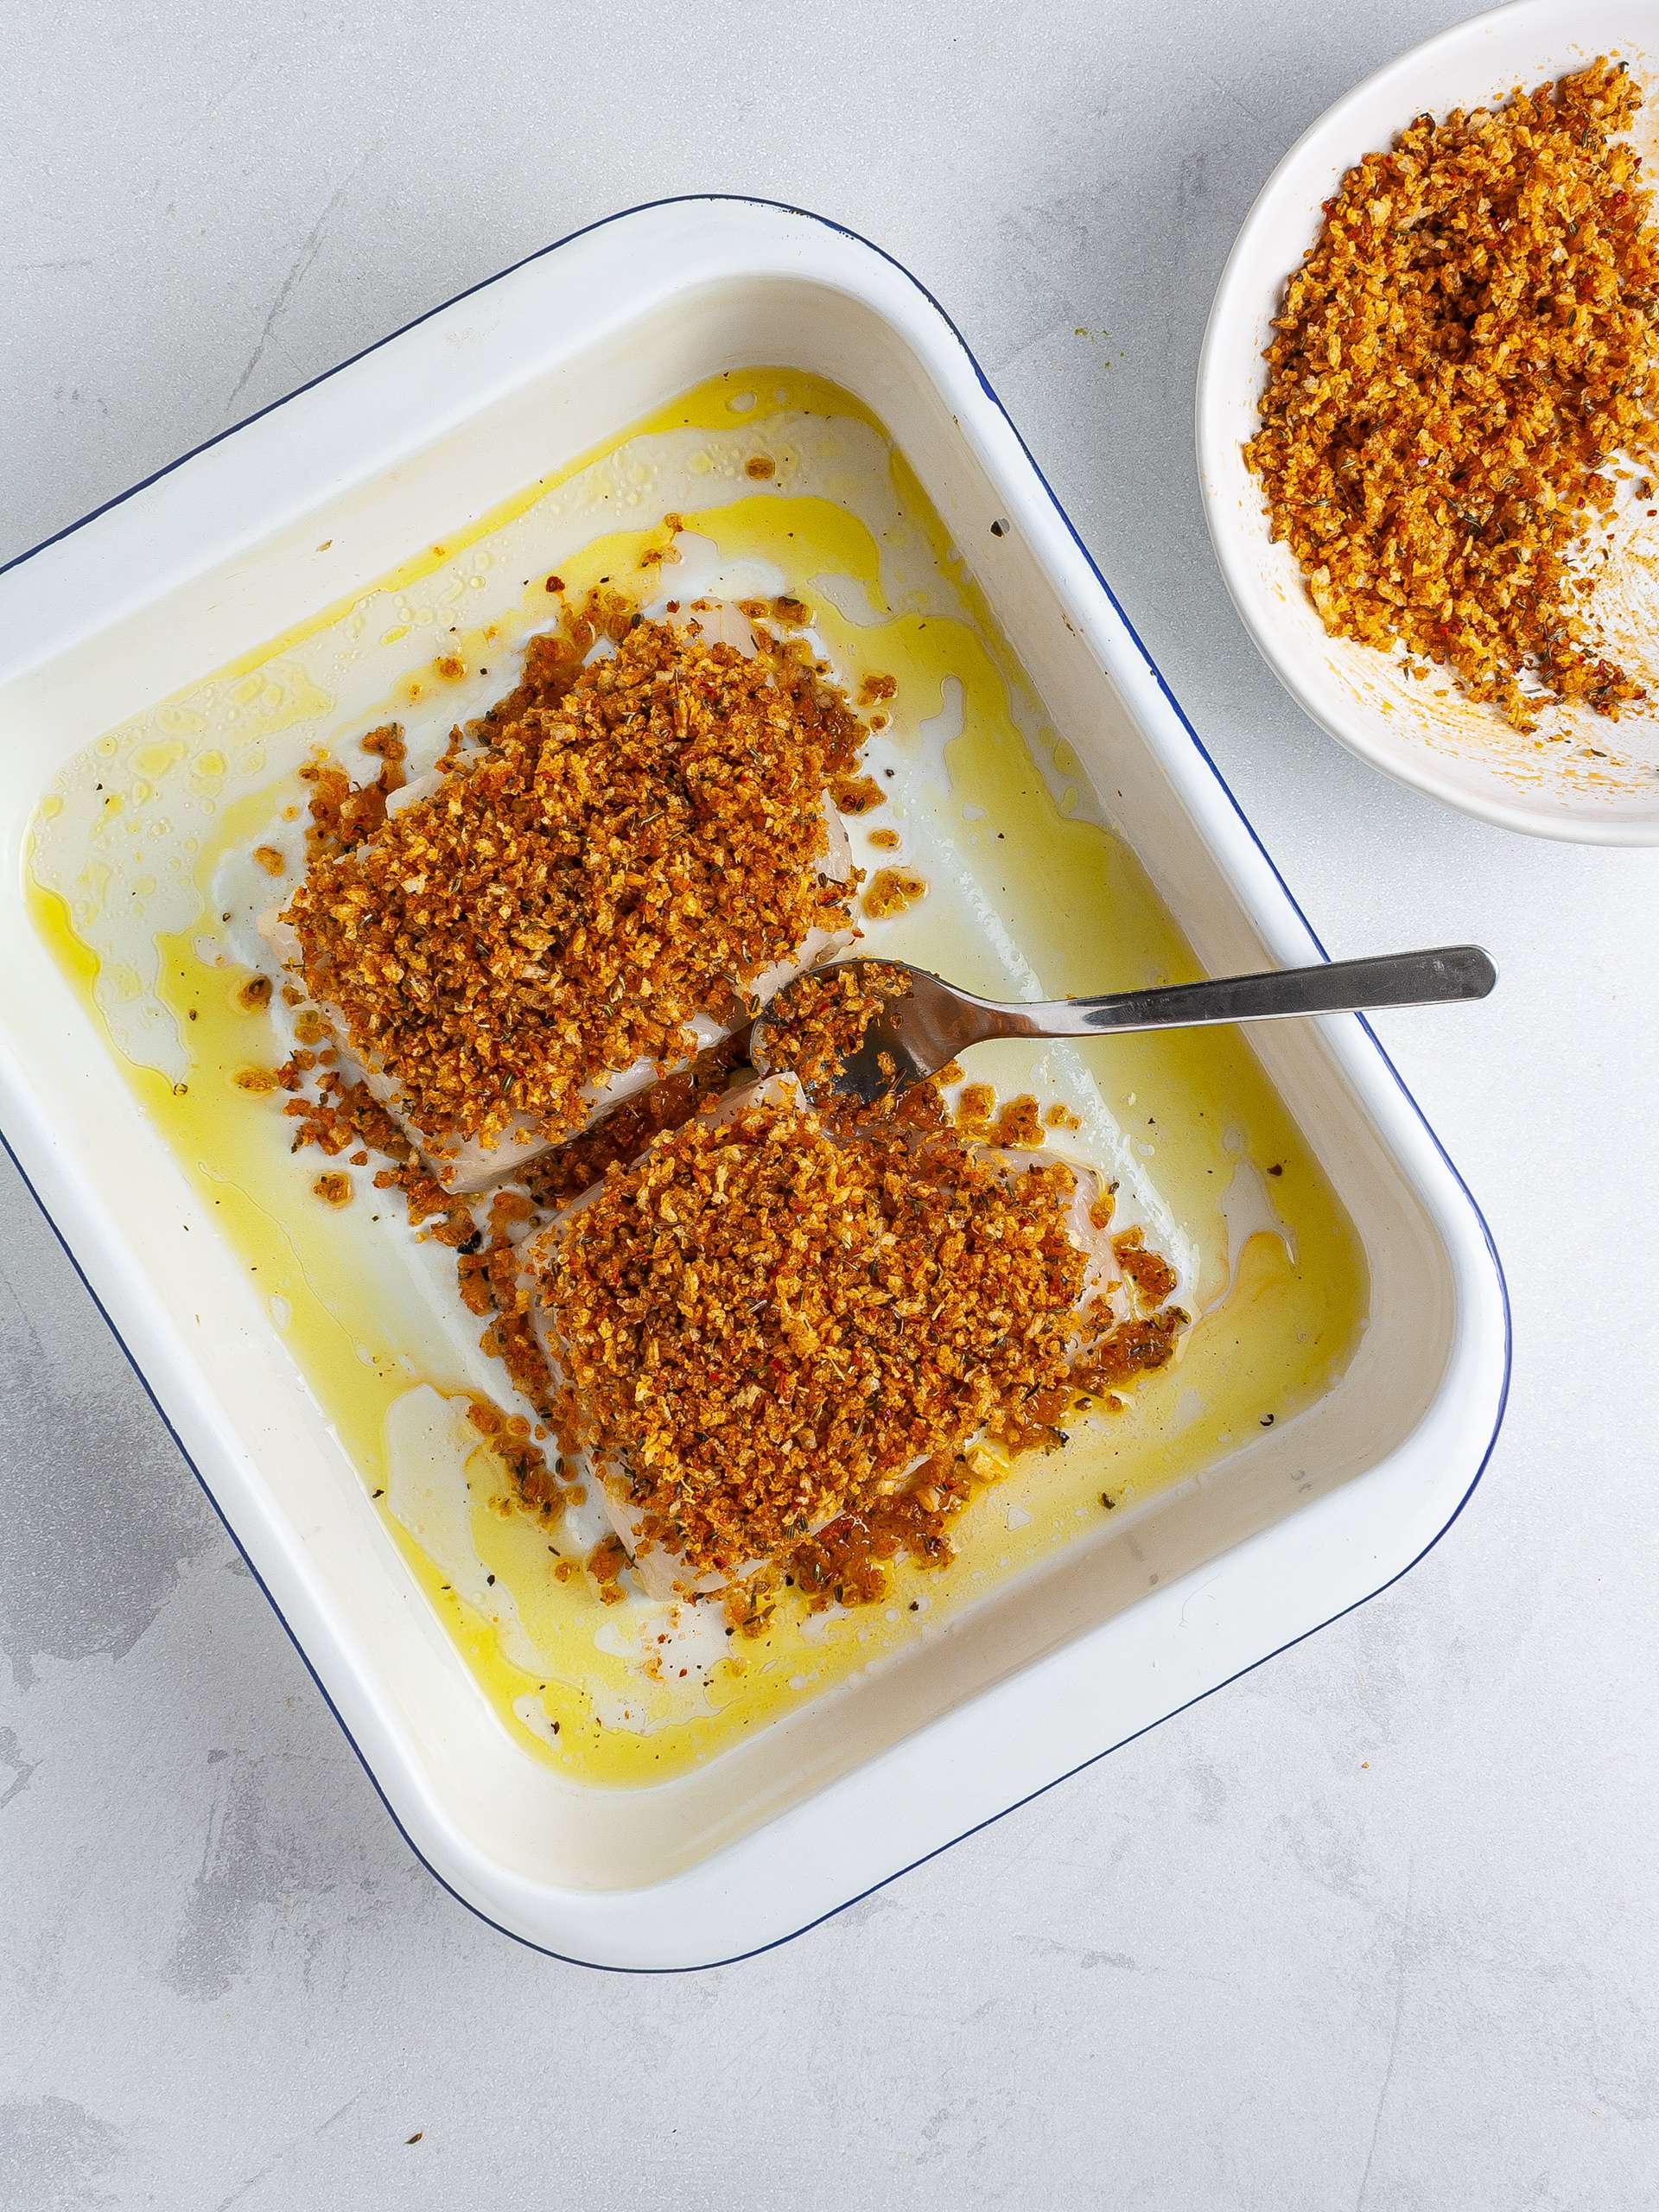 Hake coated with spicy breacrumbs